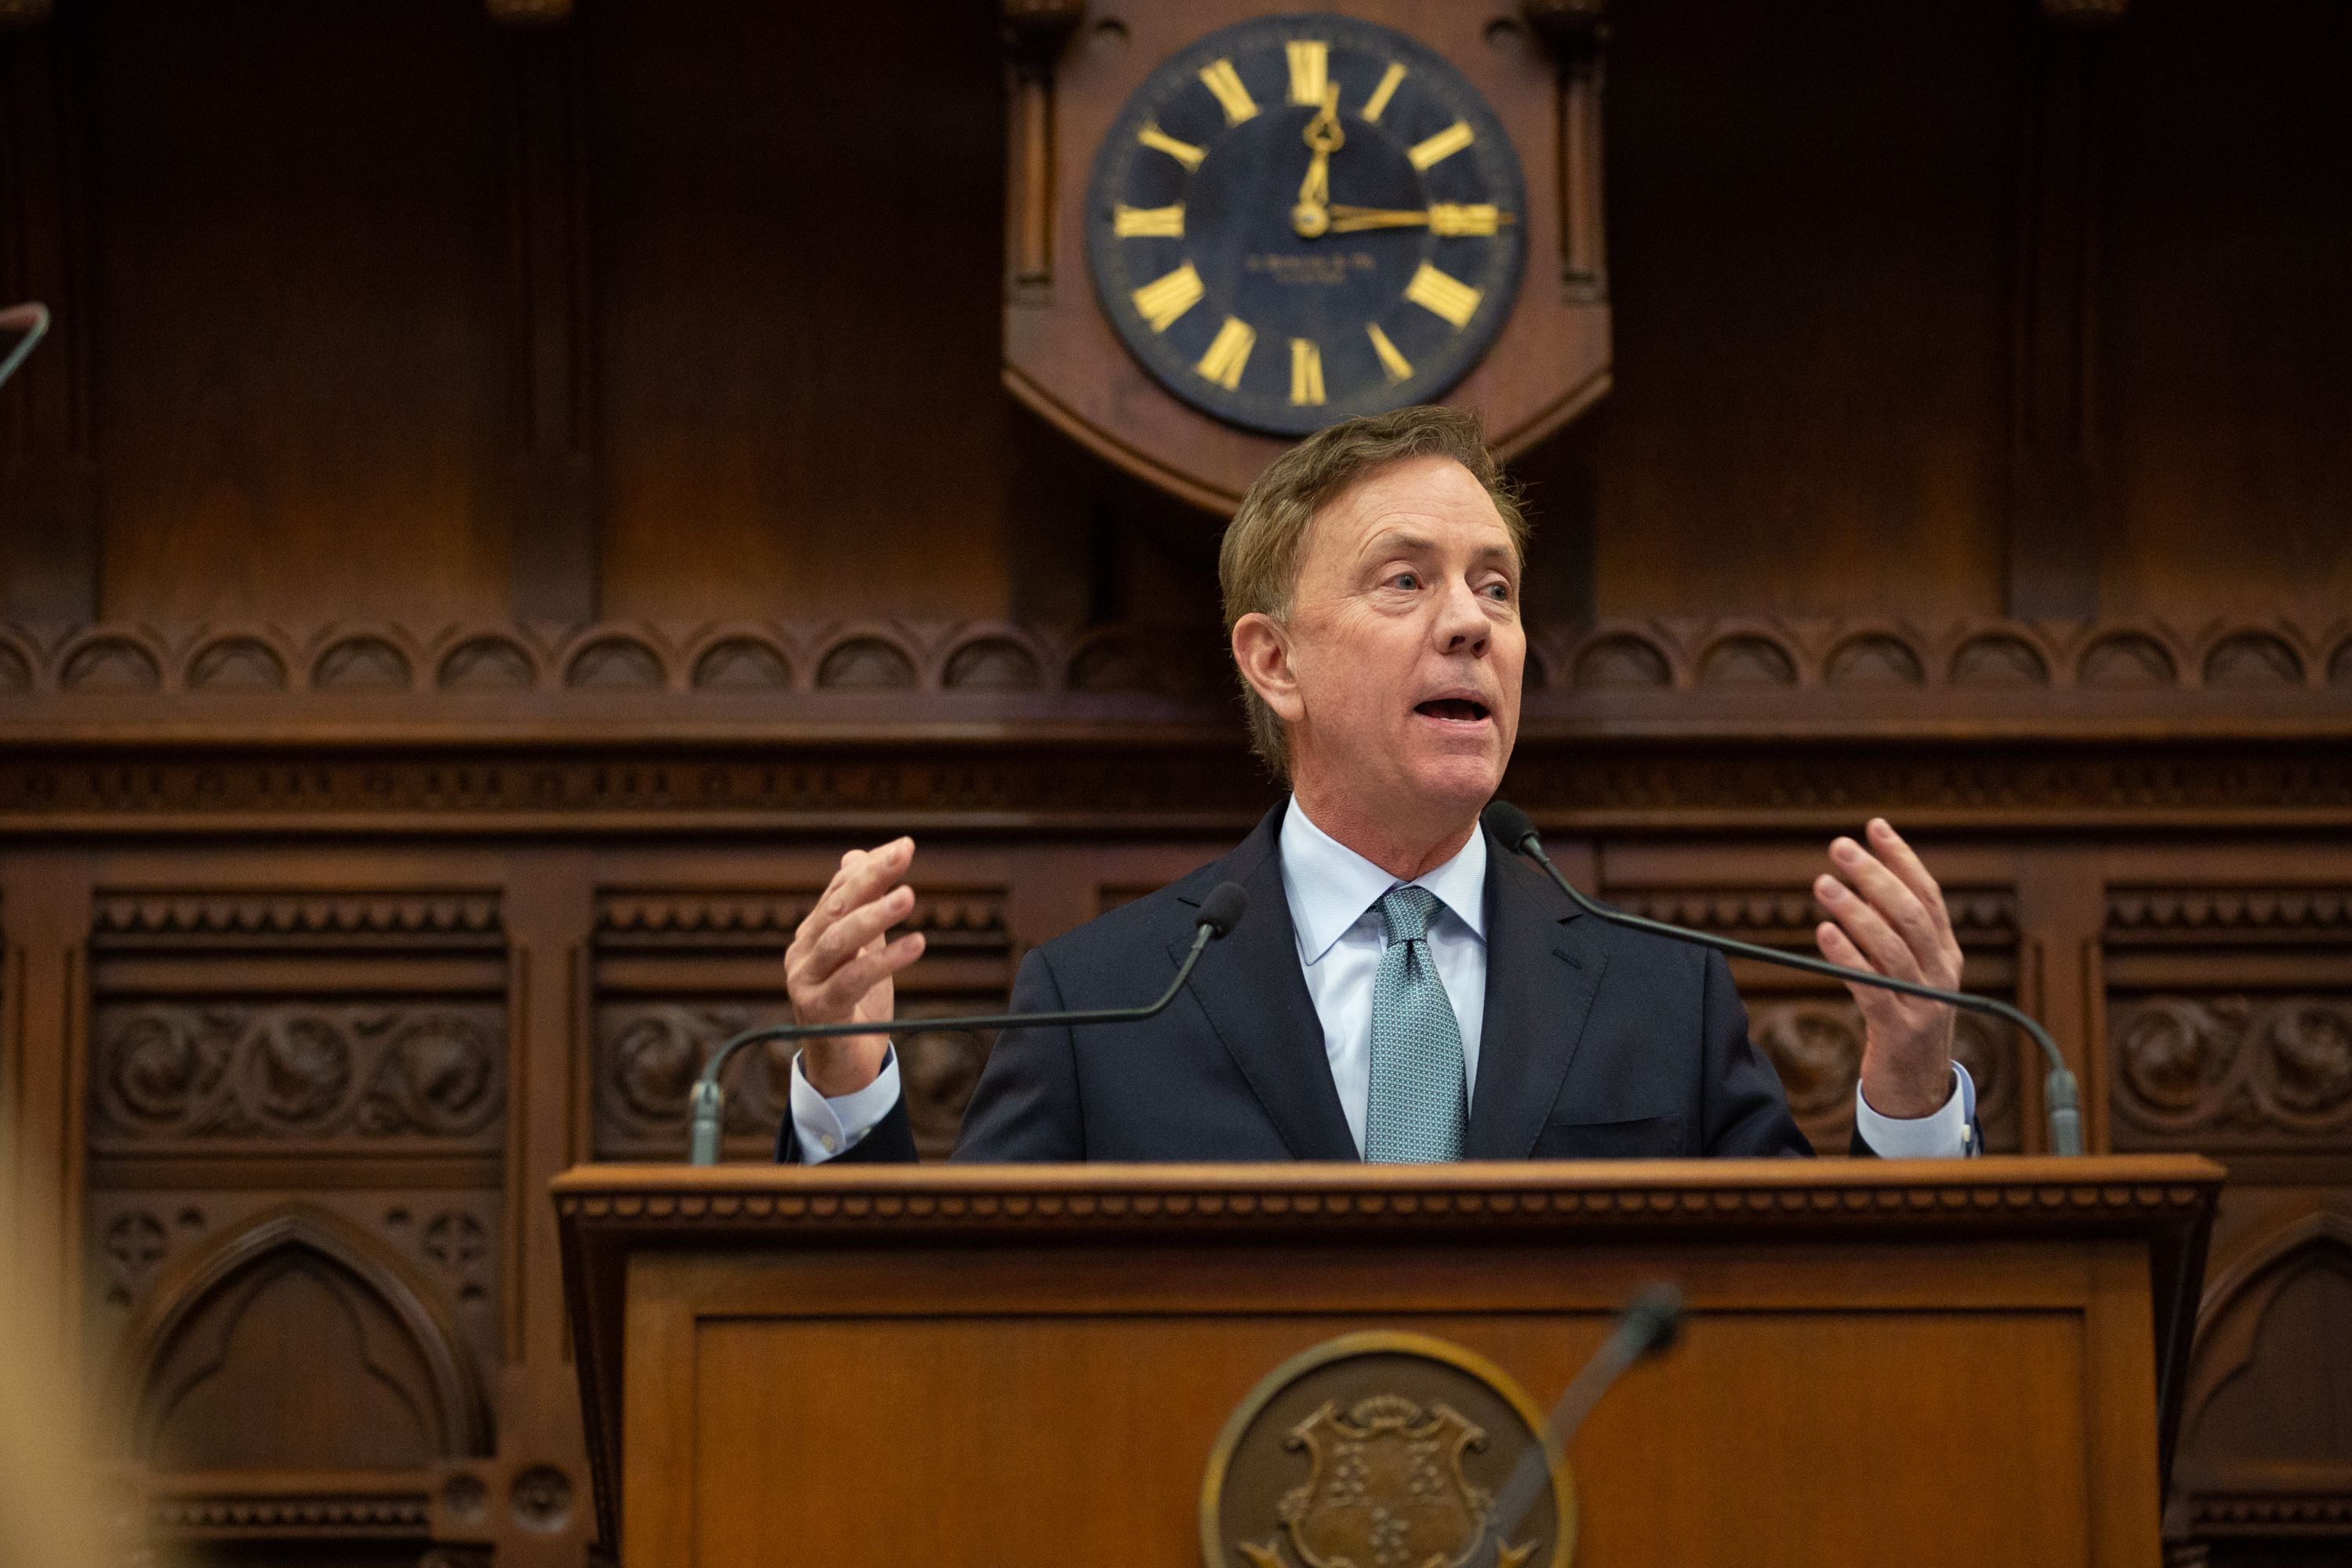 Progressive Dems will test Lamont's open-door approach to next CT budget